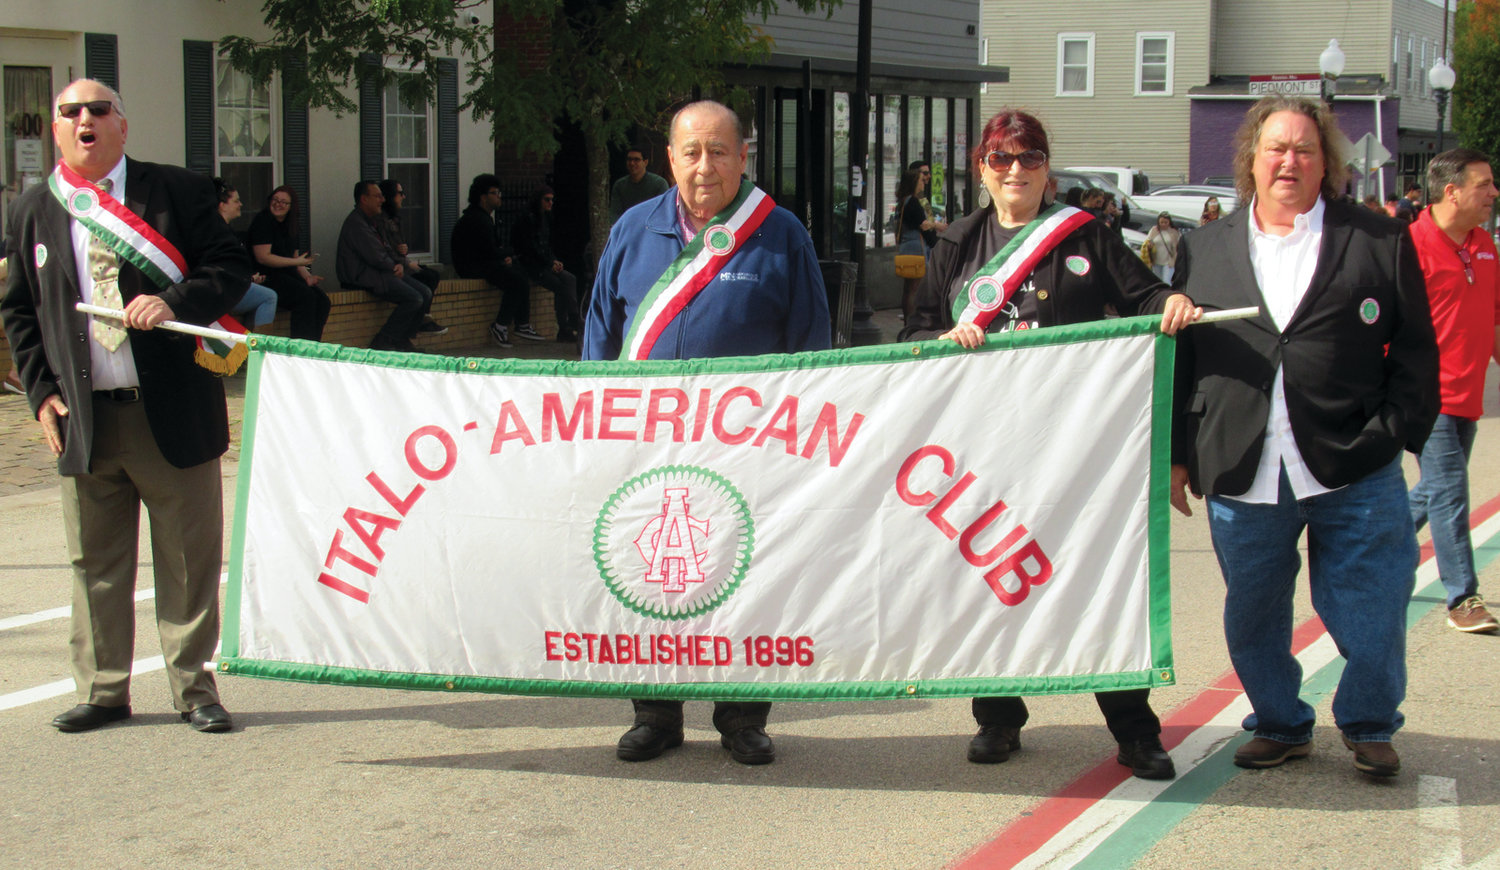 LOCAL LINK: Johnston residents Carmine DeRobbio, second left, and Linda Folcarelli were among the people who proudly carried the Italo-American Club banner in Sunday's Columbus Day Parade on Federal Hill.